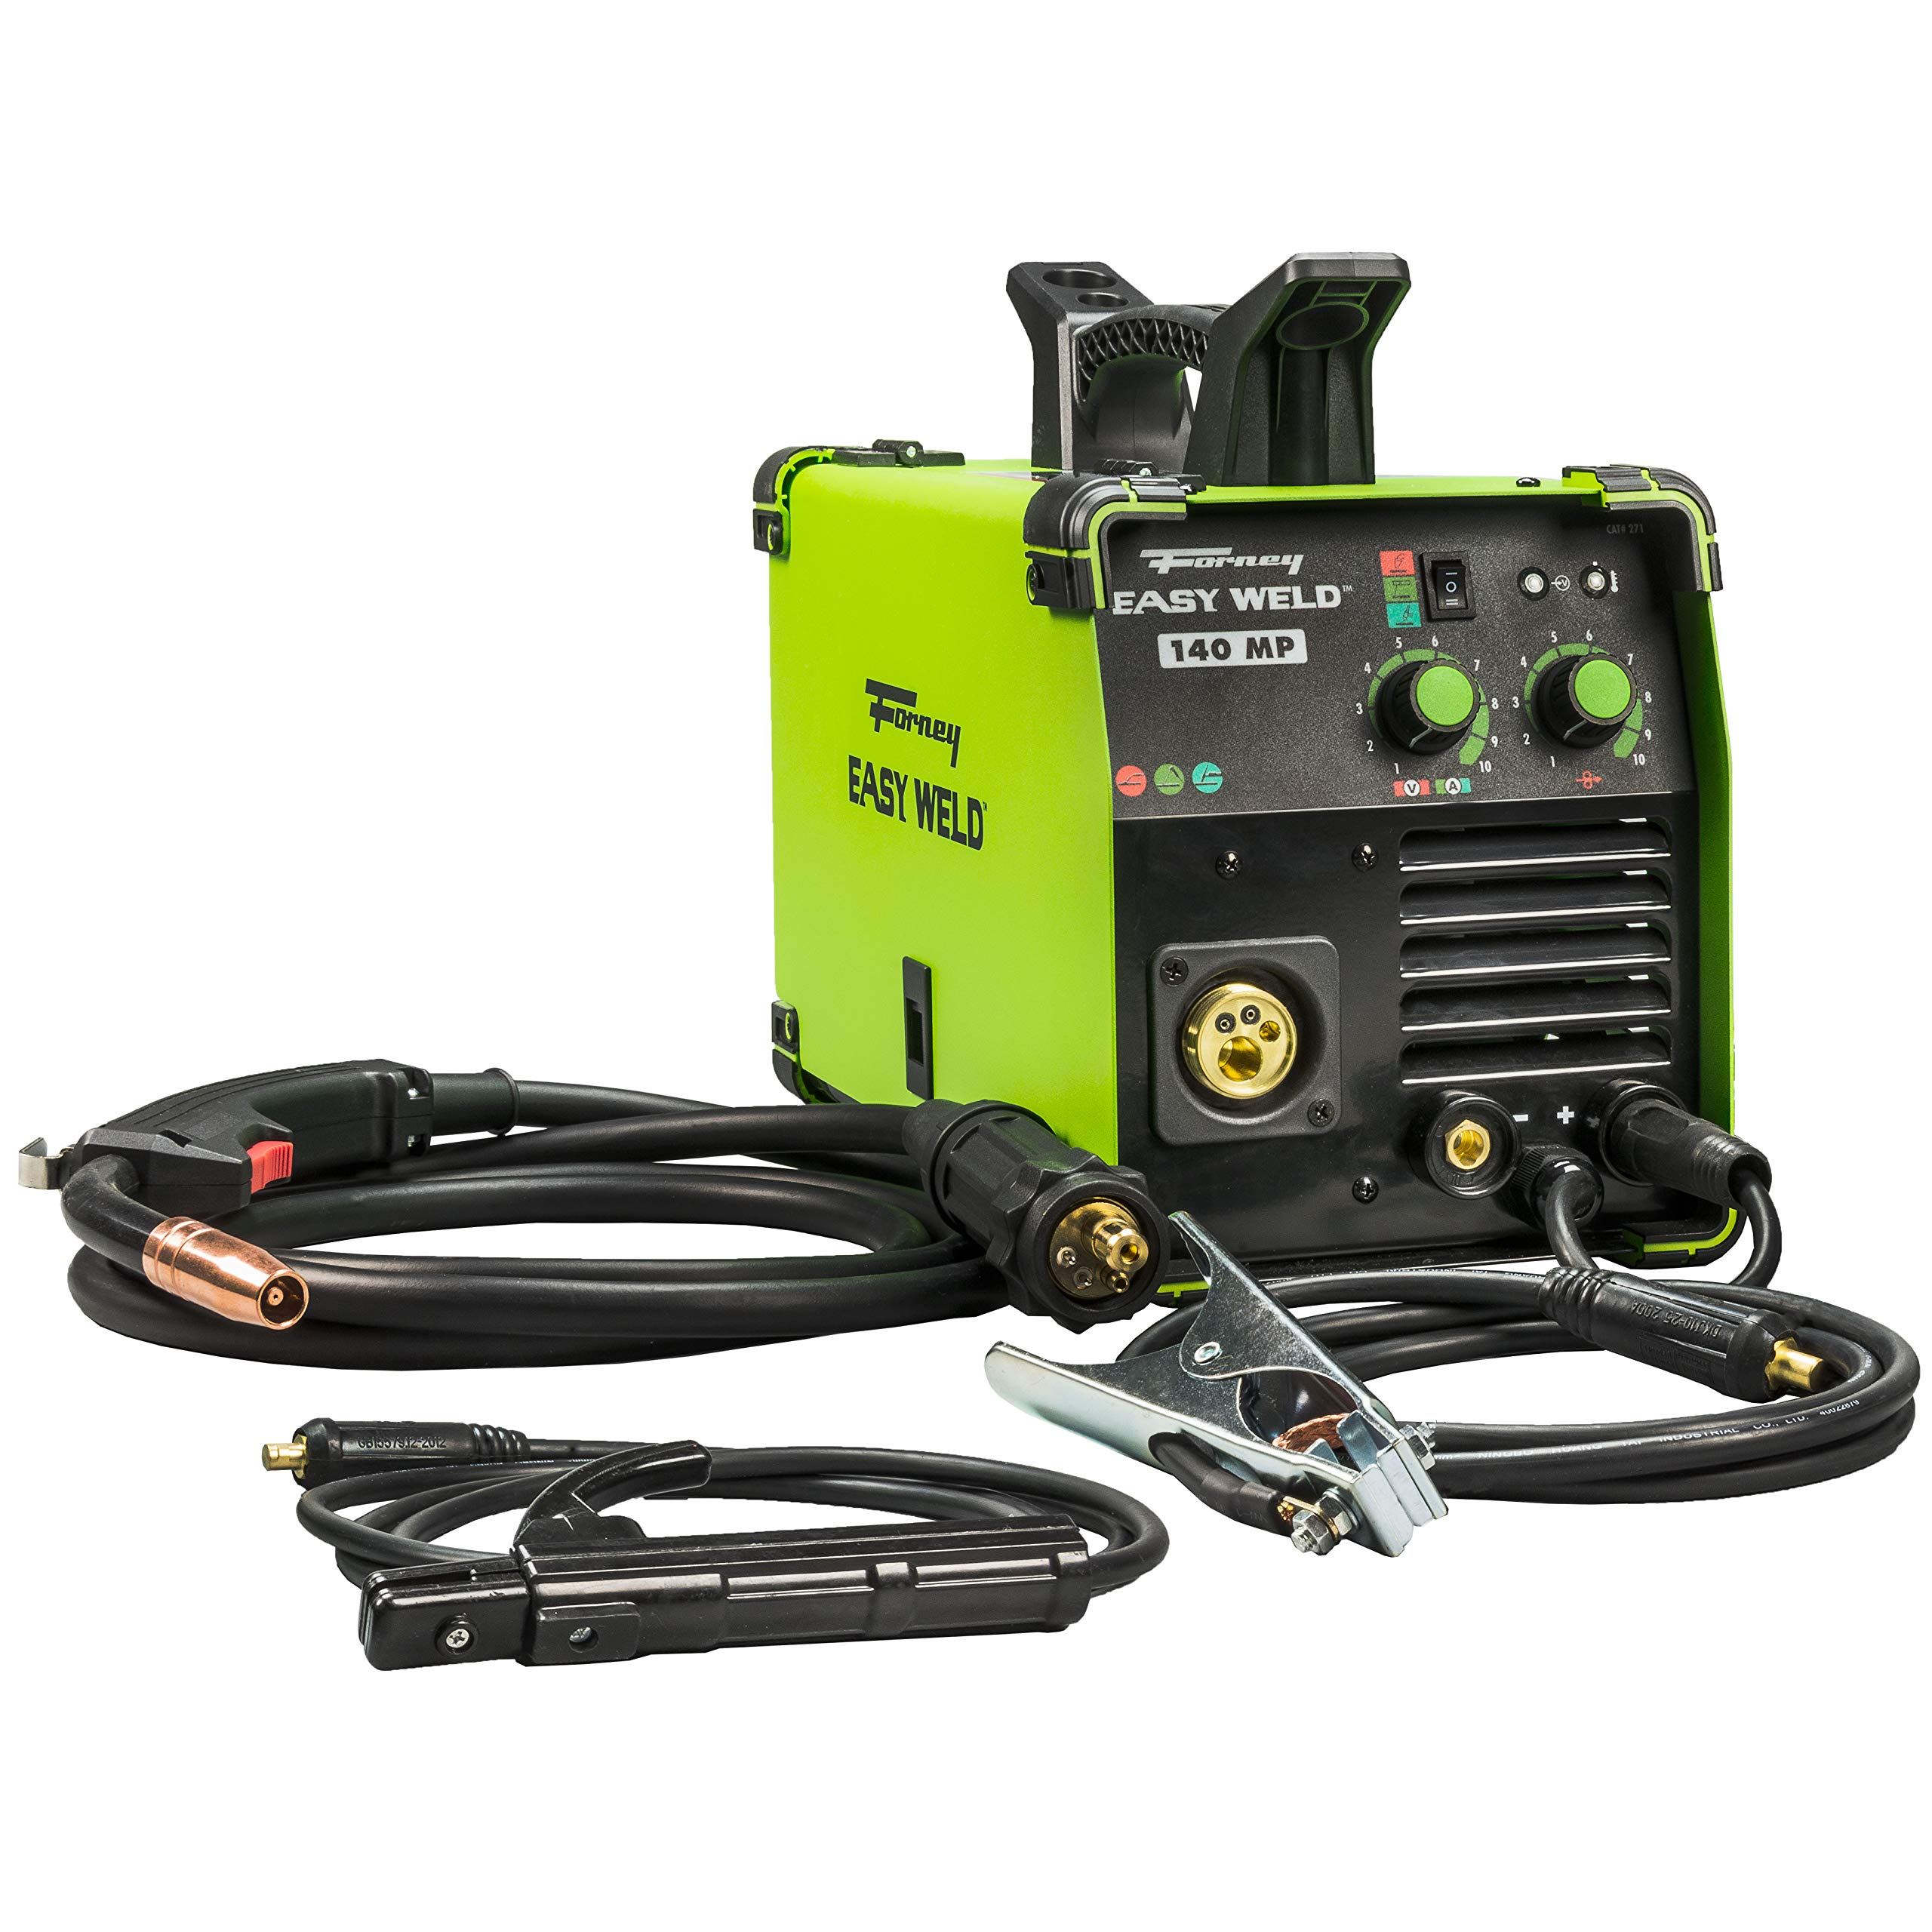 Forney Easy Weld 140 MP, Multi-Process Welder by Forney